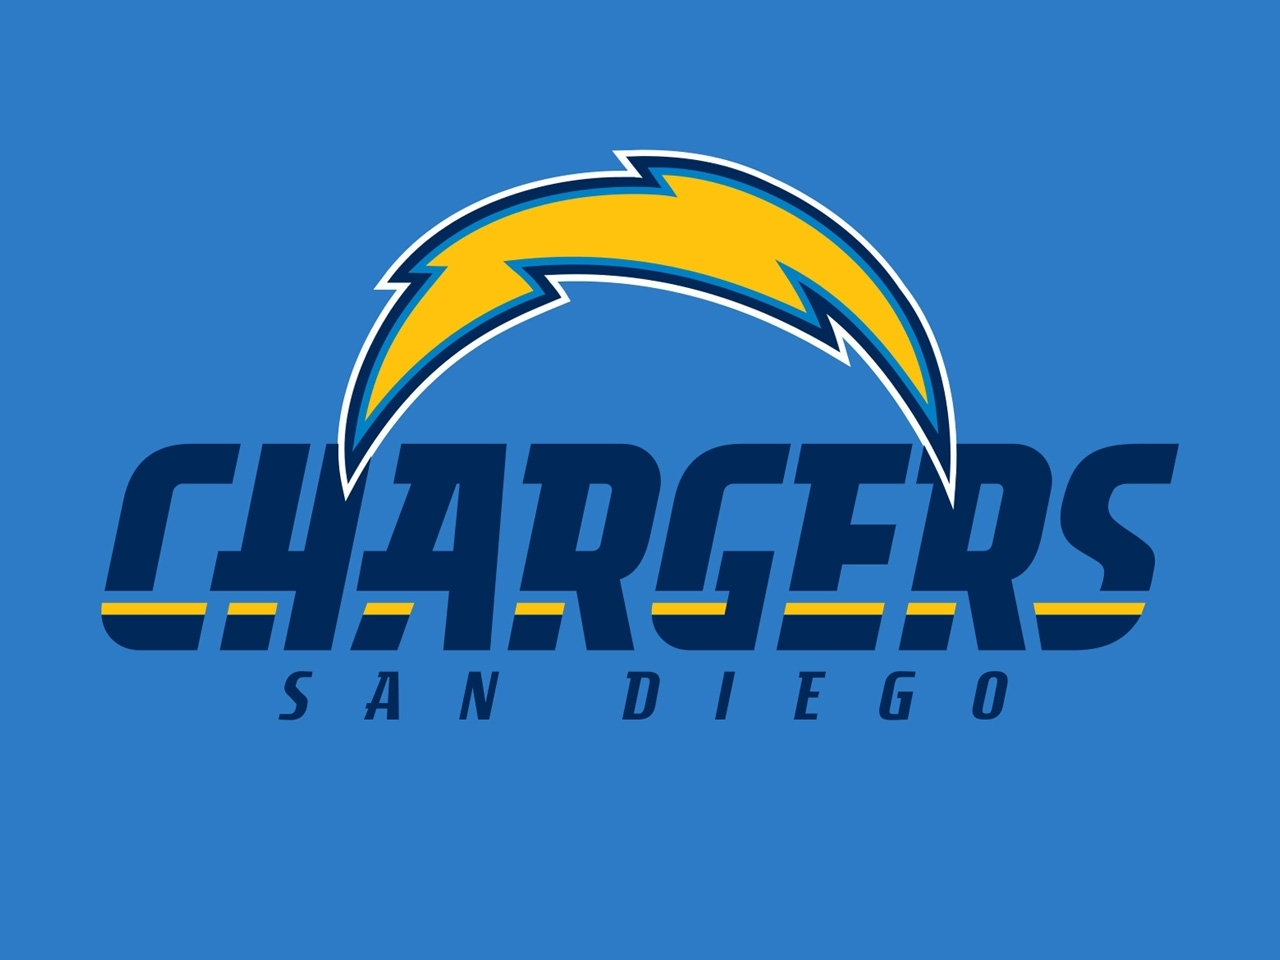 chargers wallpaper 14775 1280x960 px ~ hdwallsource